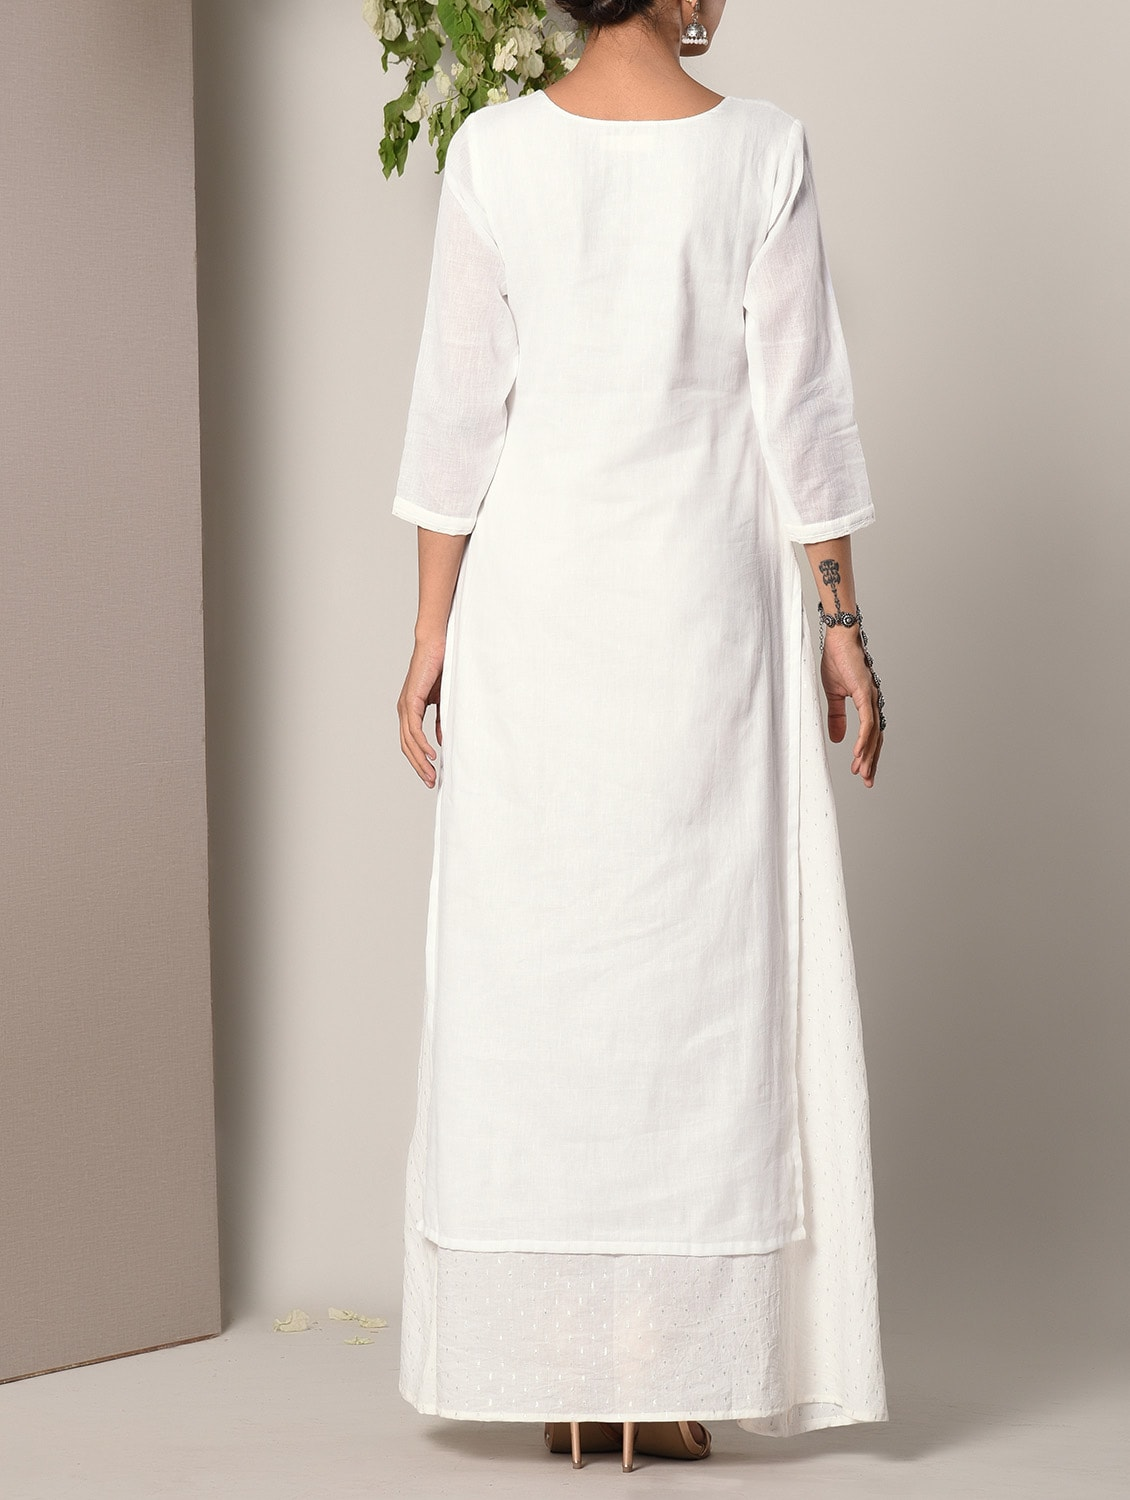 57d236755bd Buy White Layered Cotton Maxi Dress for Women from Truebrowns for ...